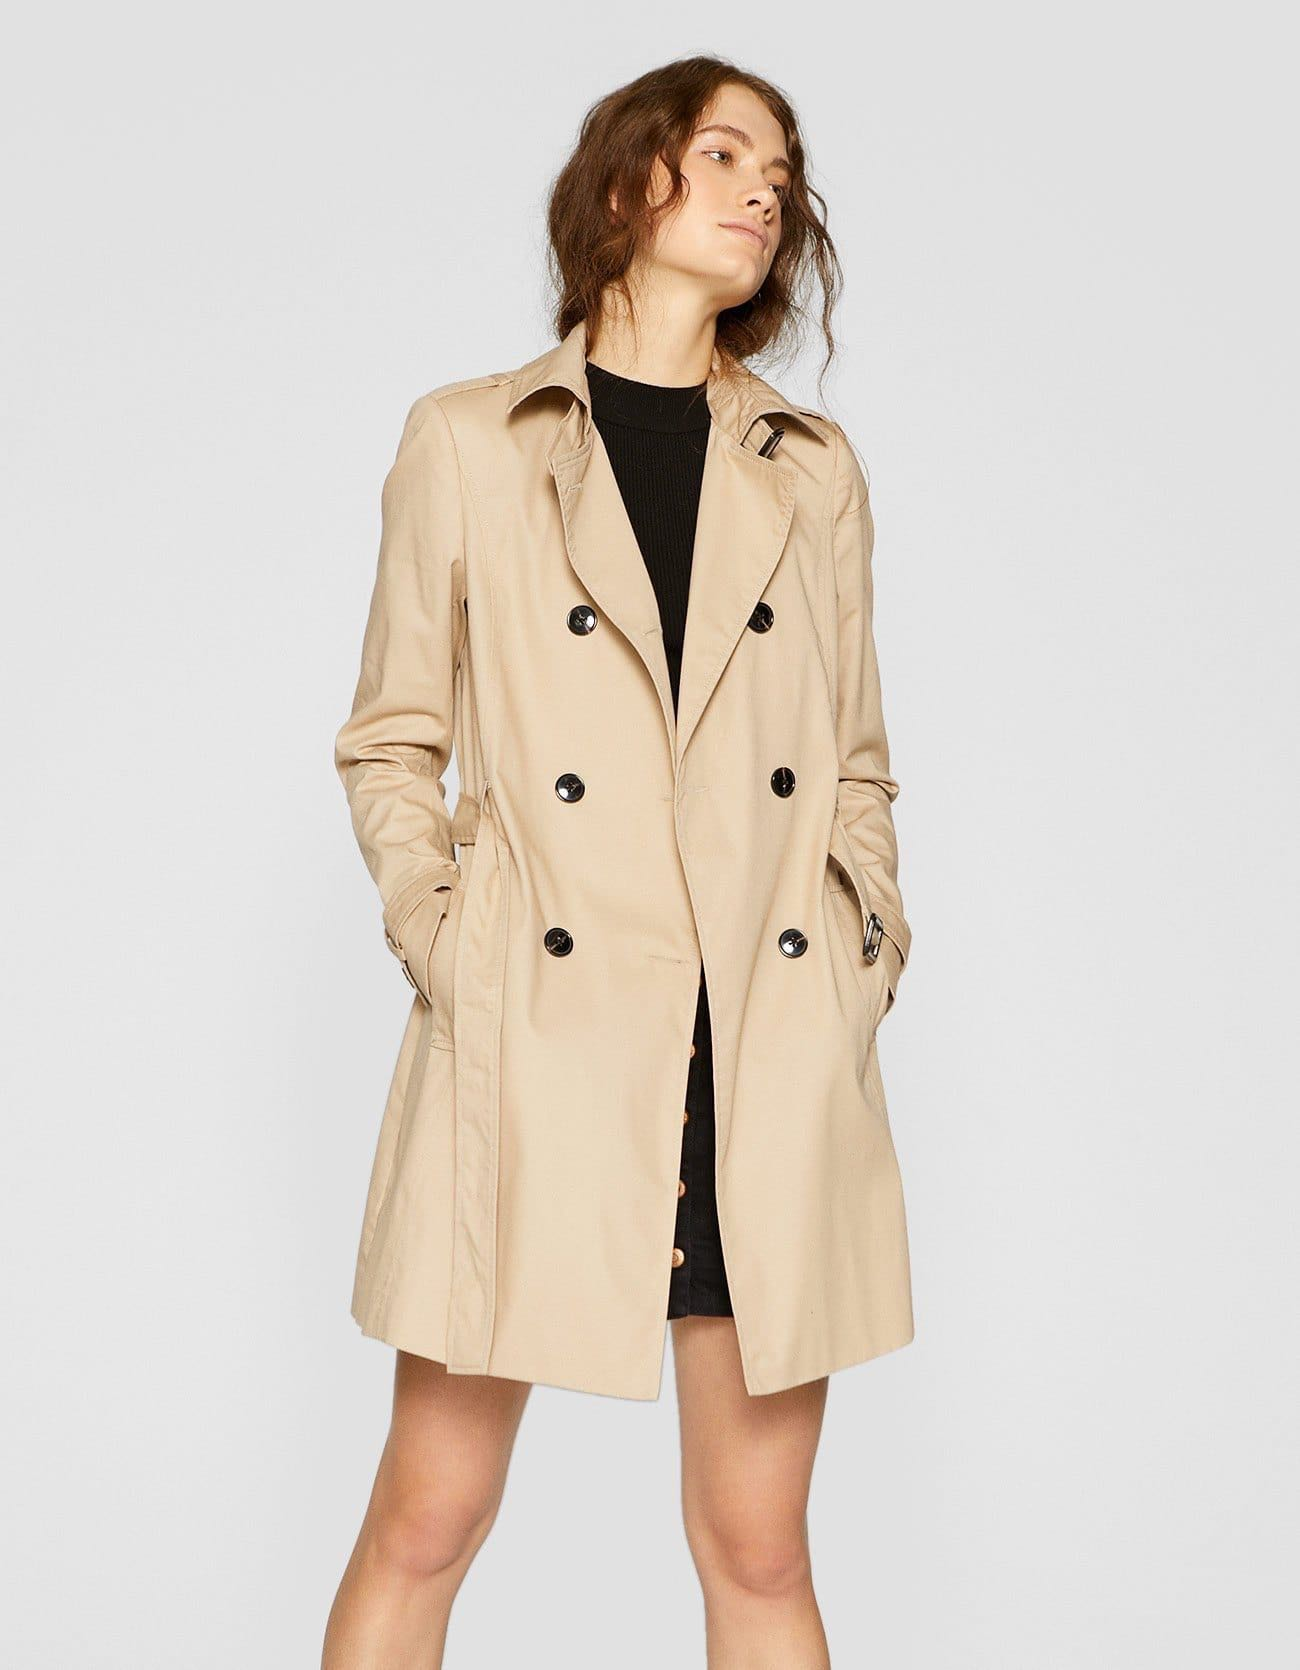 NO NEGO Stradivarius Lapel Collar Trench Coat, Women's Fashion, Clothes,  Outerwear on Carousell